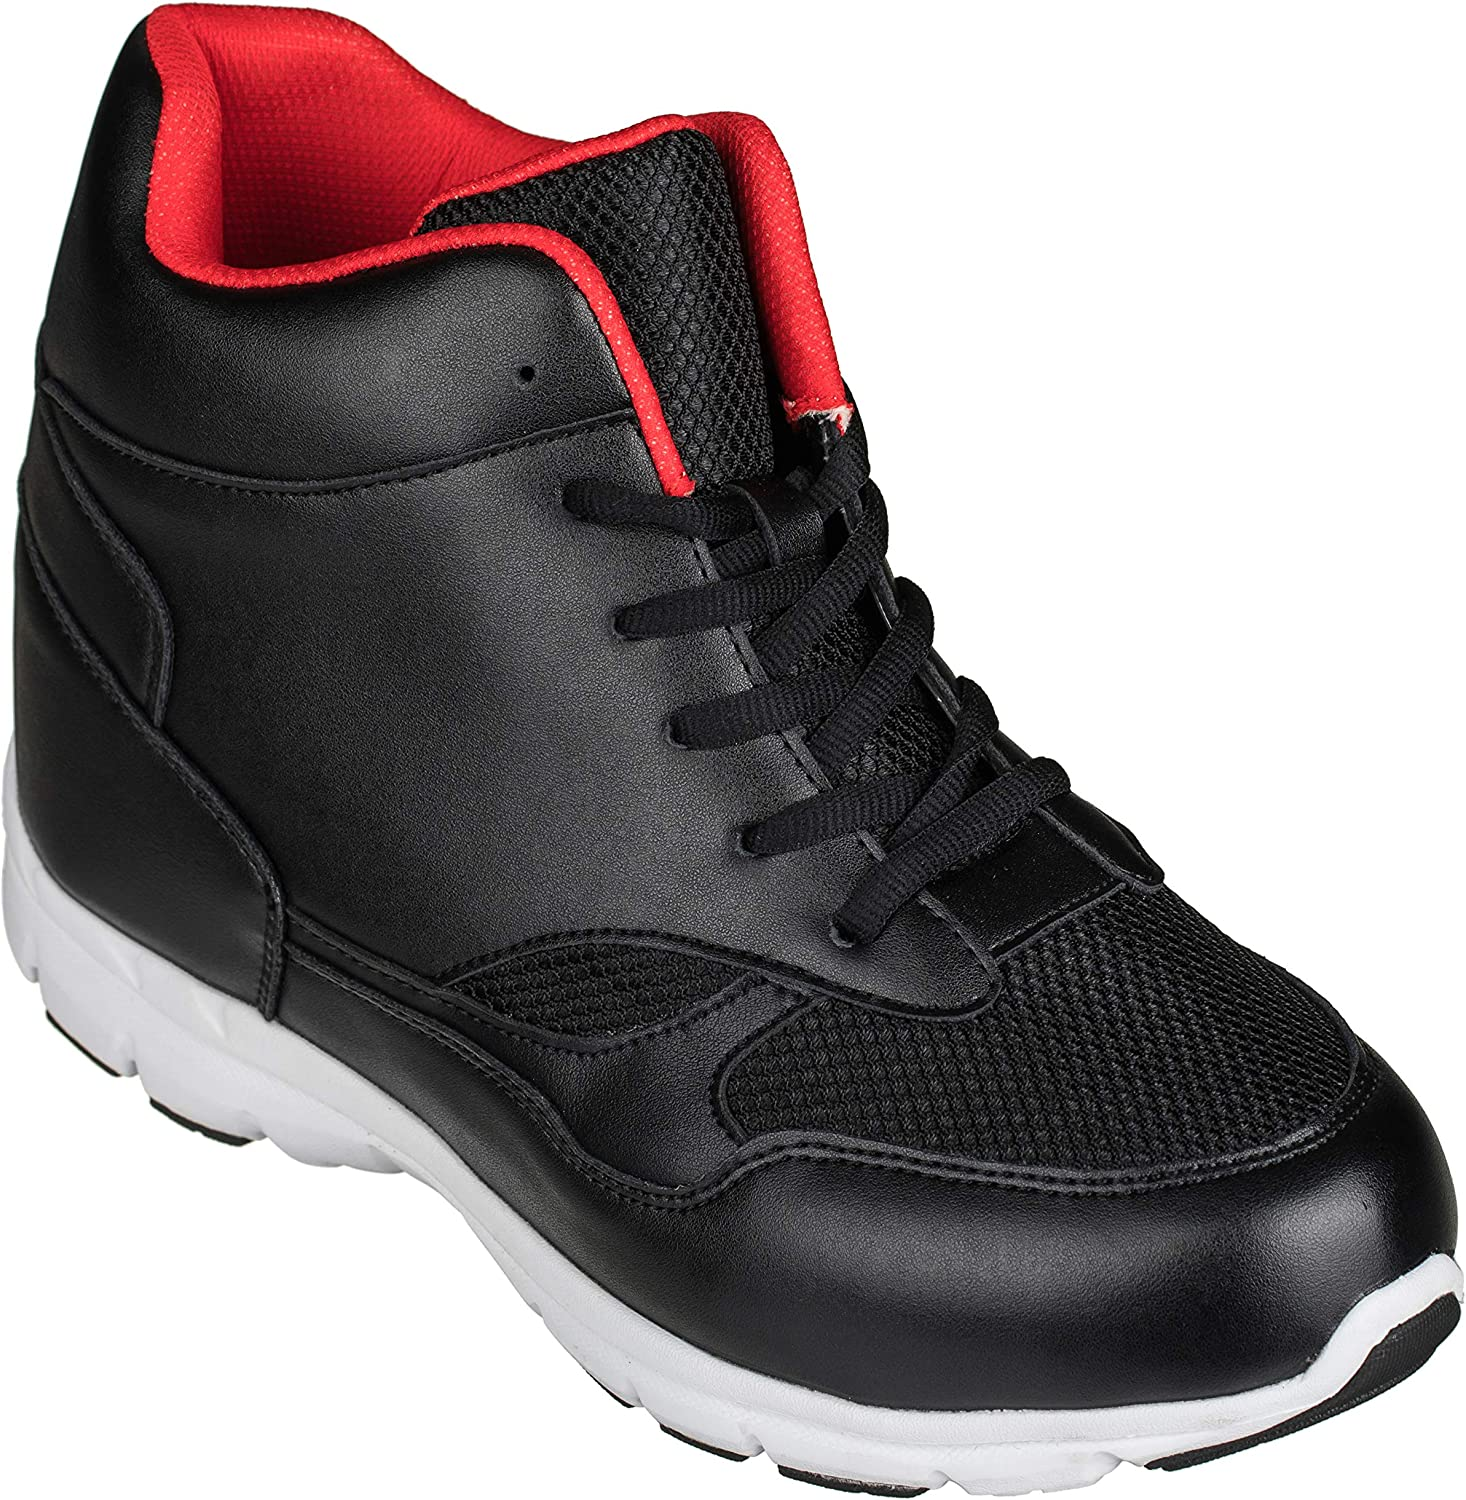 CALTO - G3332-4 Inches Taller - Height Increasing Elevator shoes (Black Red High-top Sneakers)